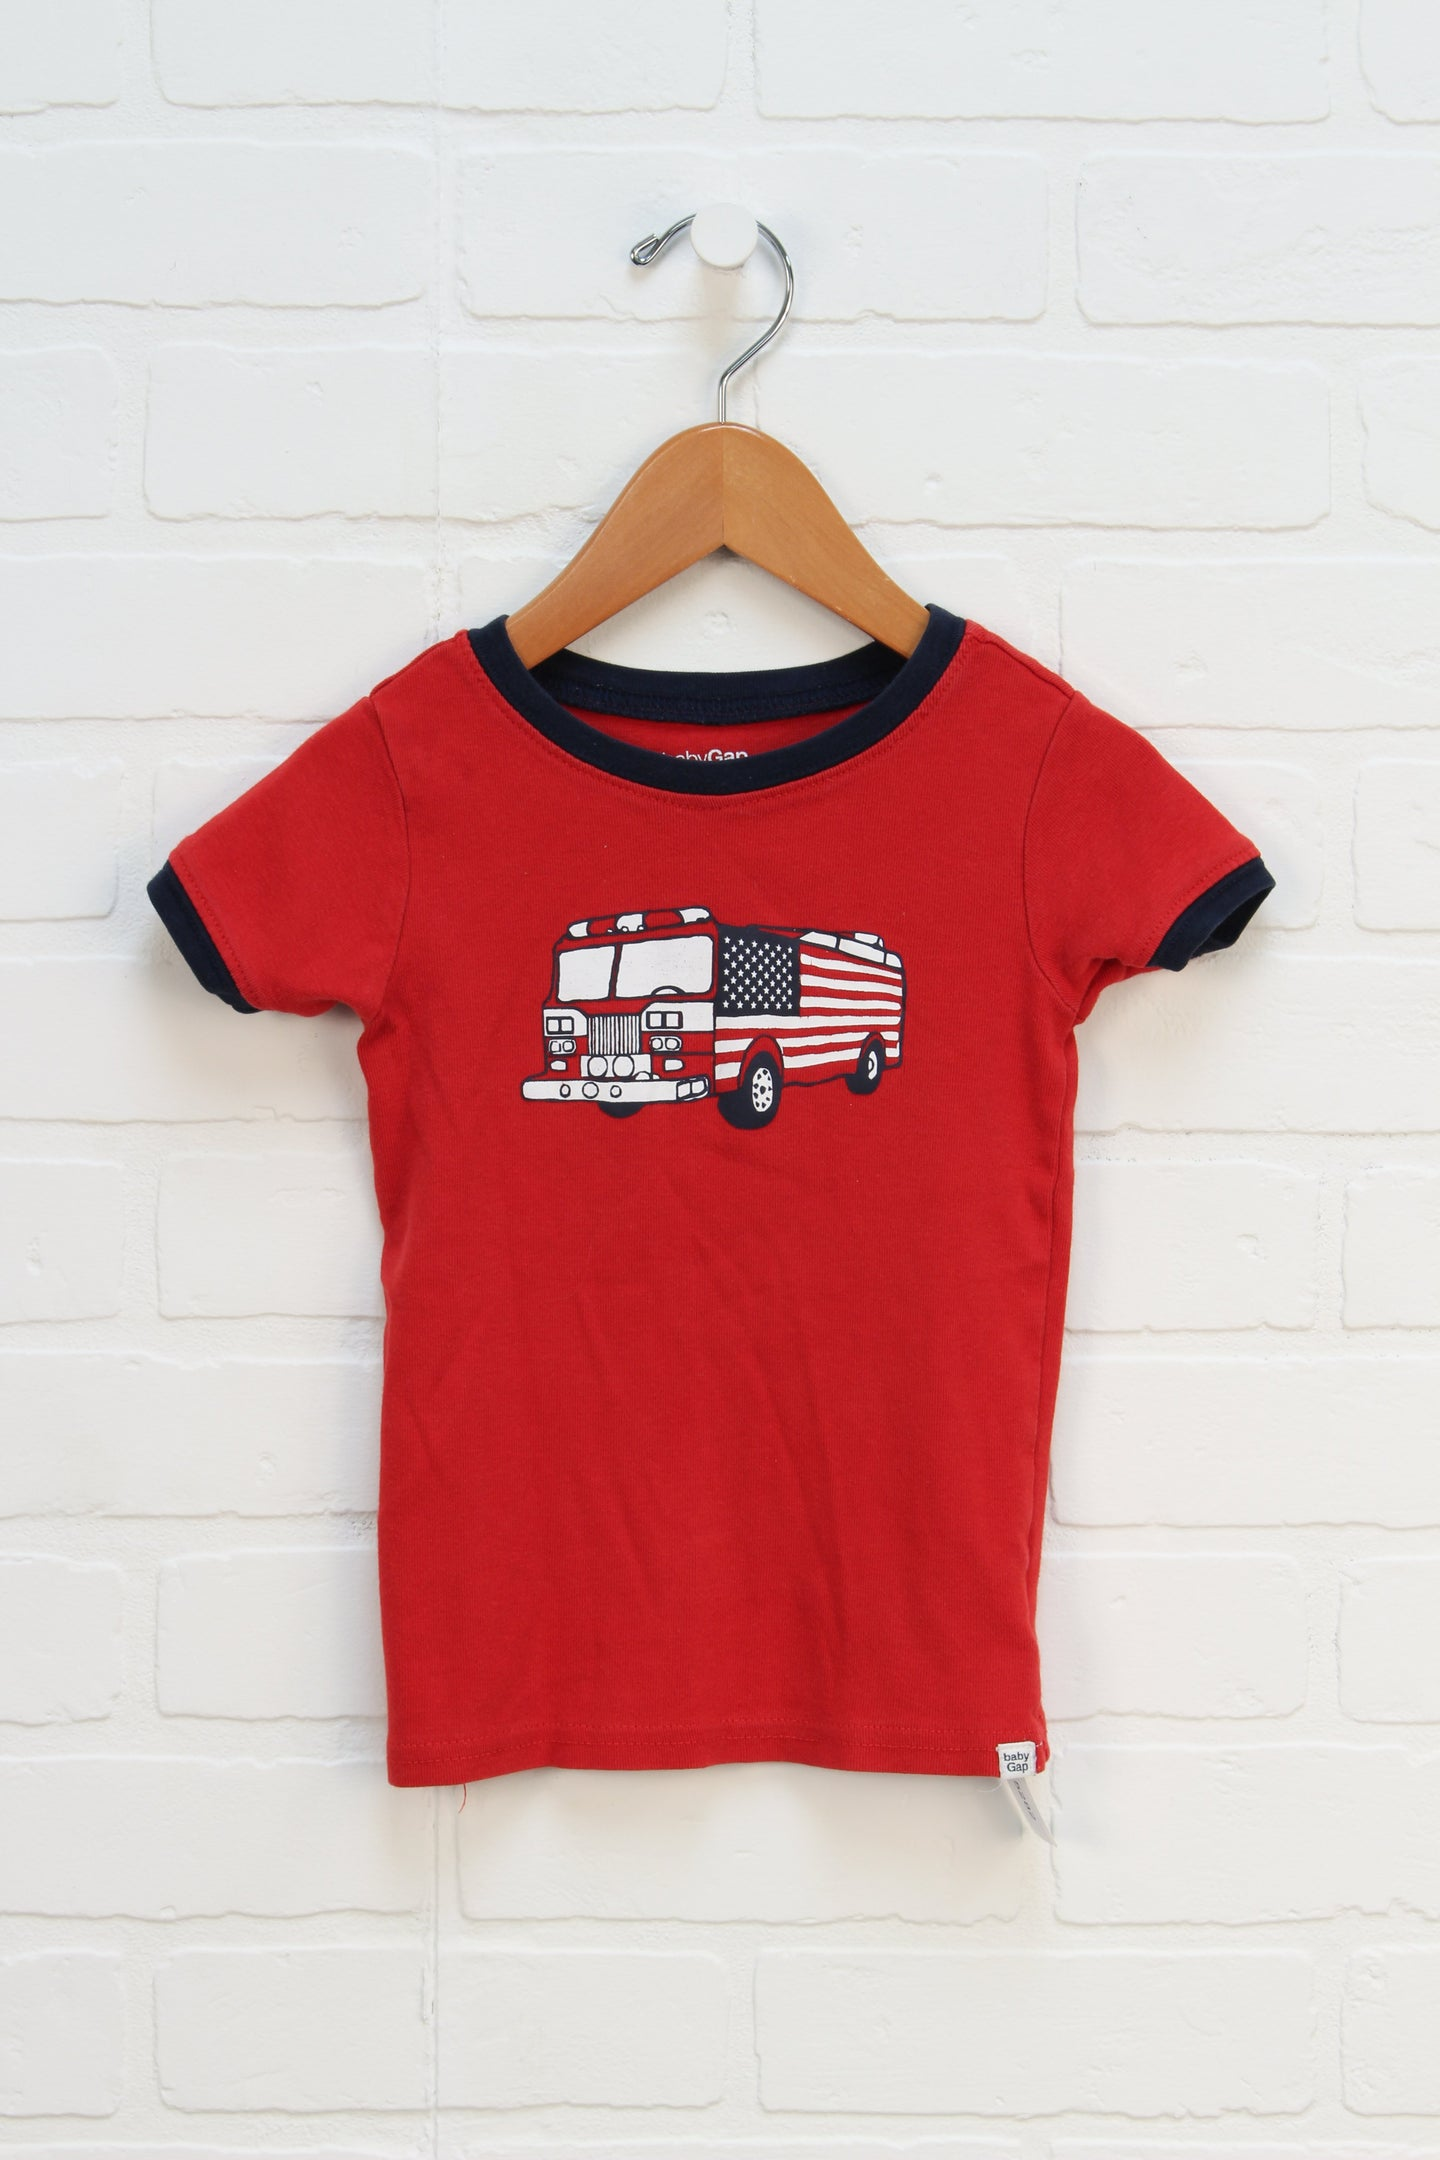 Red + Navy Graphic T-Shirt: Firetruck (Size 3)